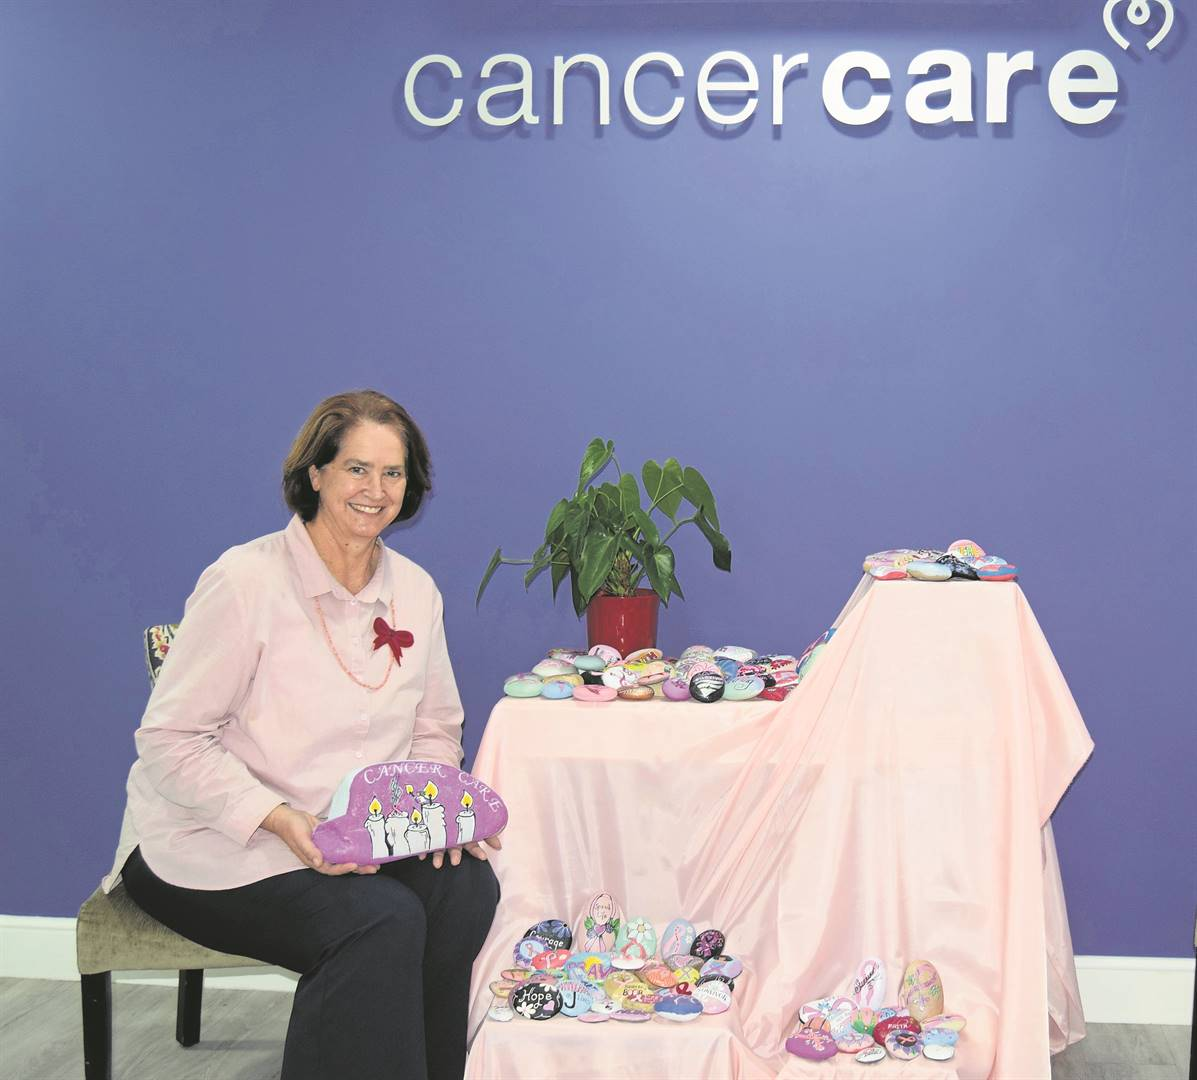 Carin Schultz, social worker at Cancer Care Somerset West, with the large rock painted for the oncology centre.